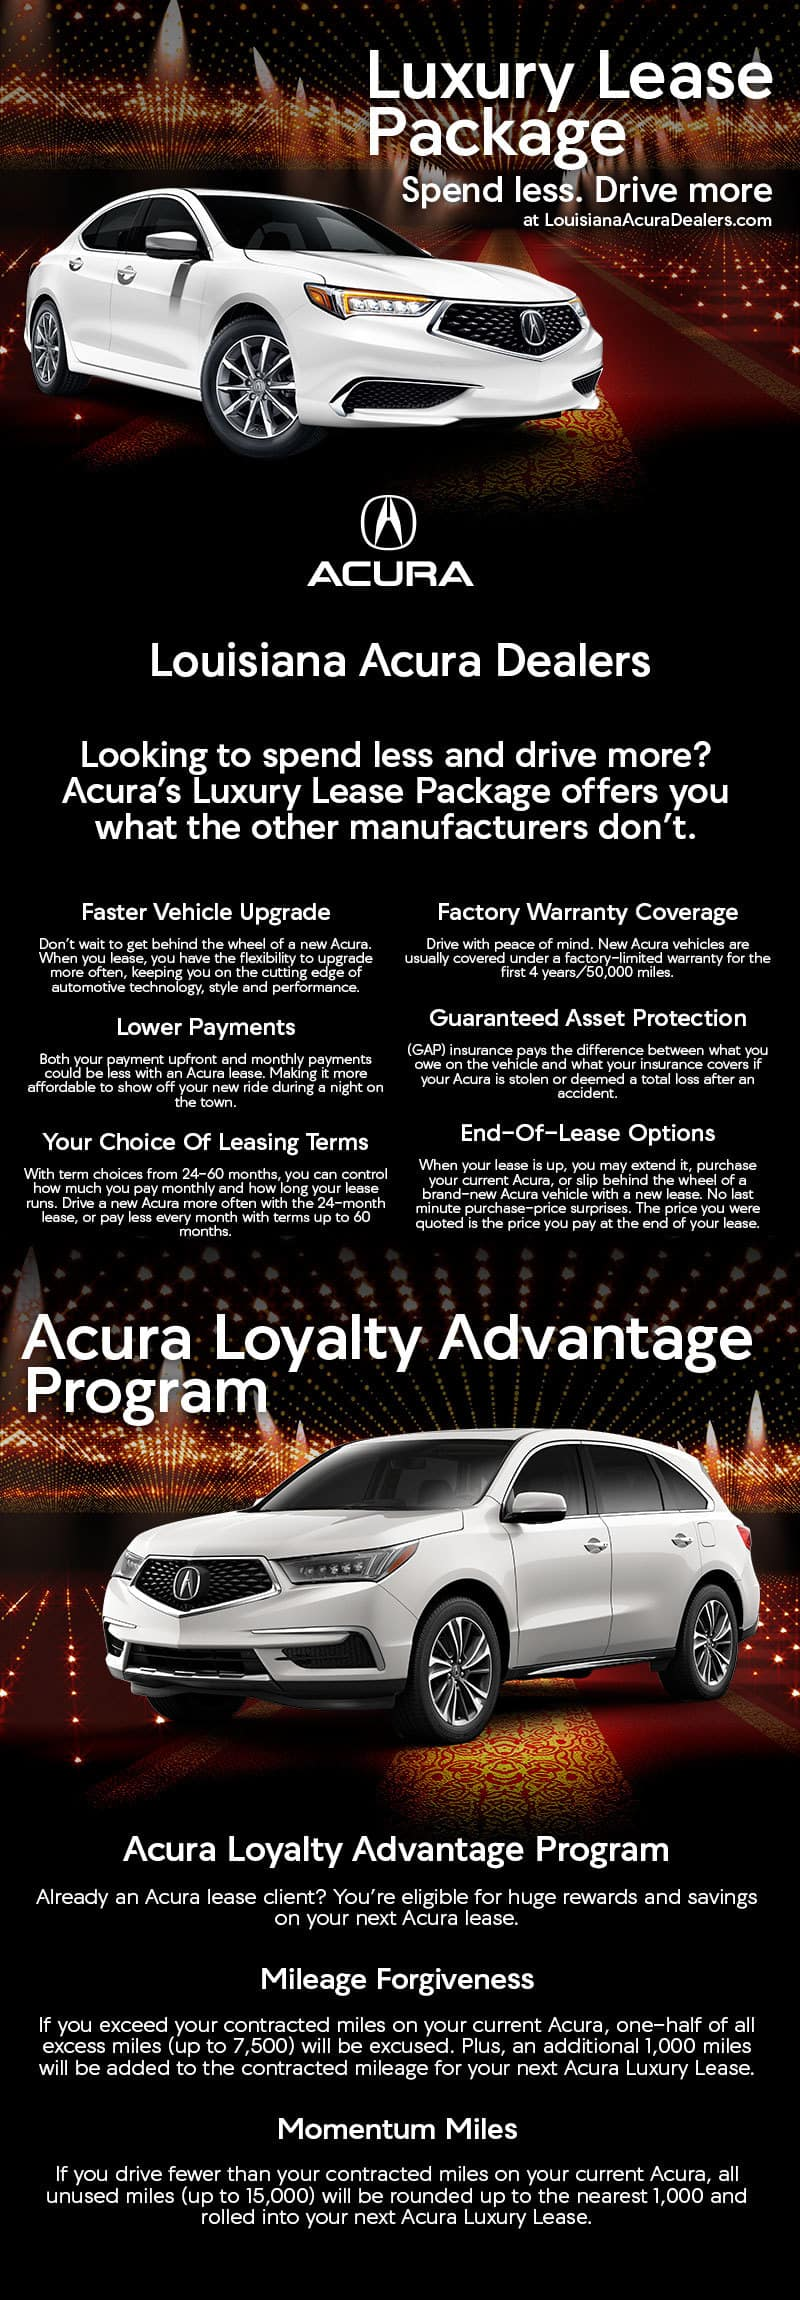 new your az acura of peoria s walk coming options on have considered lease you honda htm simple an center let is in team end or to the dealership it return soon